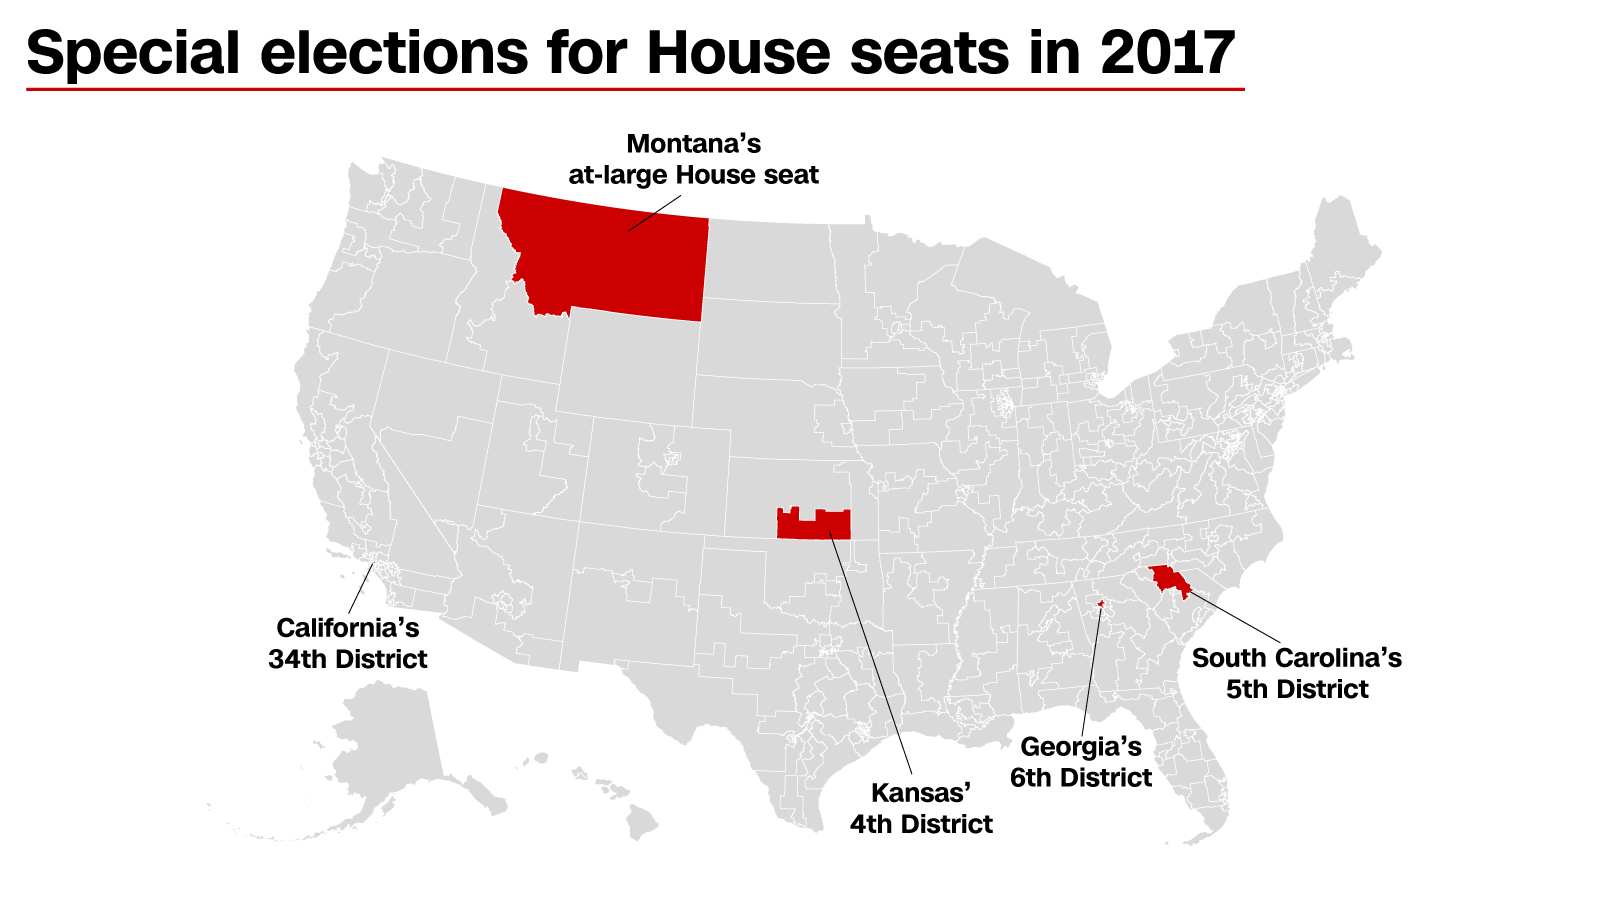 Democrats' chances of flipping GOP House seats in 5 special elections, ranked